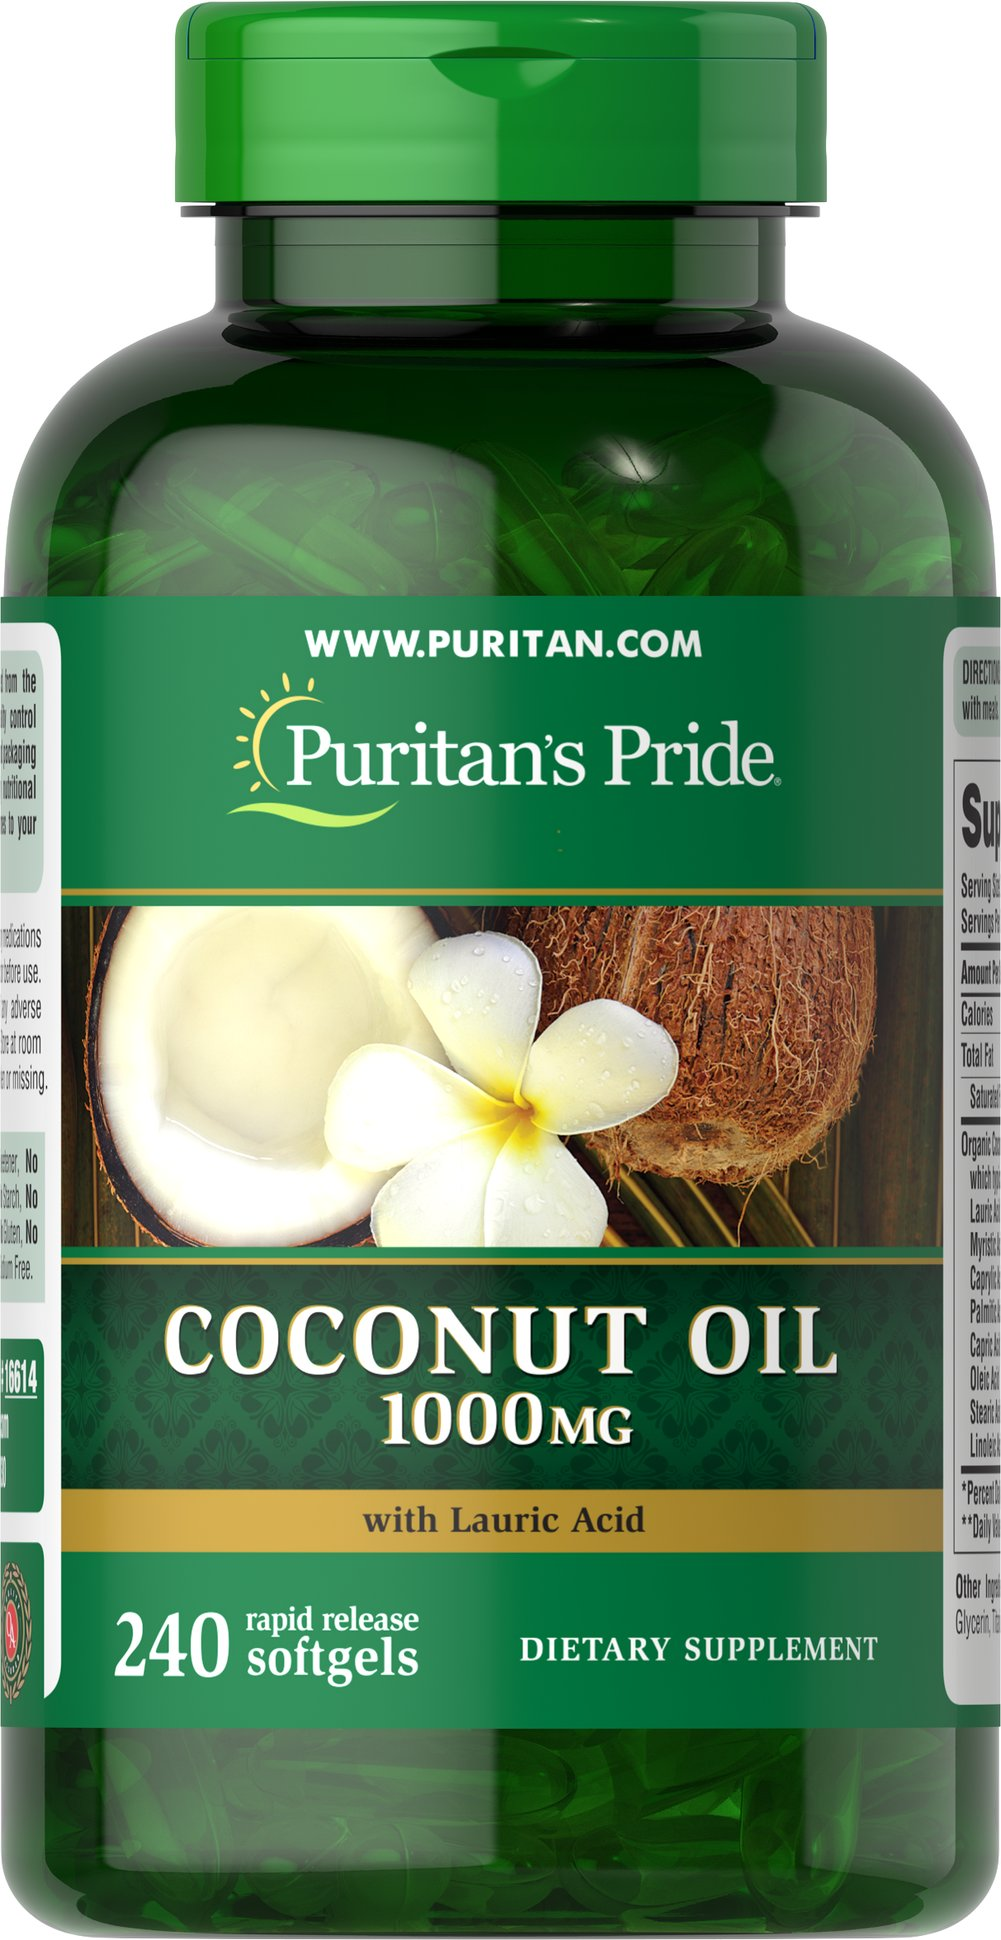 Coconut Oil 1000 mg Coconuts are enjoyed in tropical regions around the world and now you can enjoy the benefits of Coconut Oil in a convenient softgel. Coconut Oil provides you with a natural energy source, and contains essential fatty acids and Medium Chain Triglycerides (MCTs). MCTs are oxidized differently in the body than other fats, making Coconut Oil a readily available energy source.**  240 Softgels 1000 mg $37.99